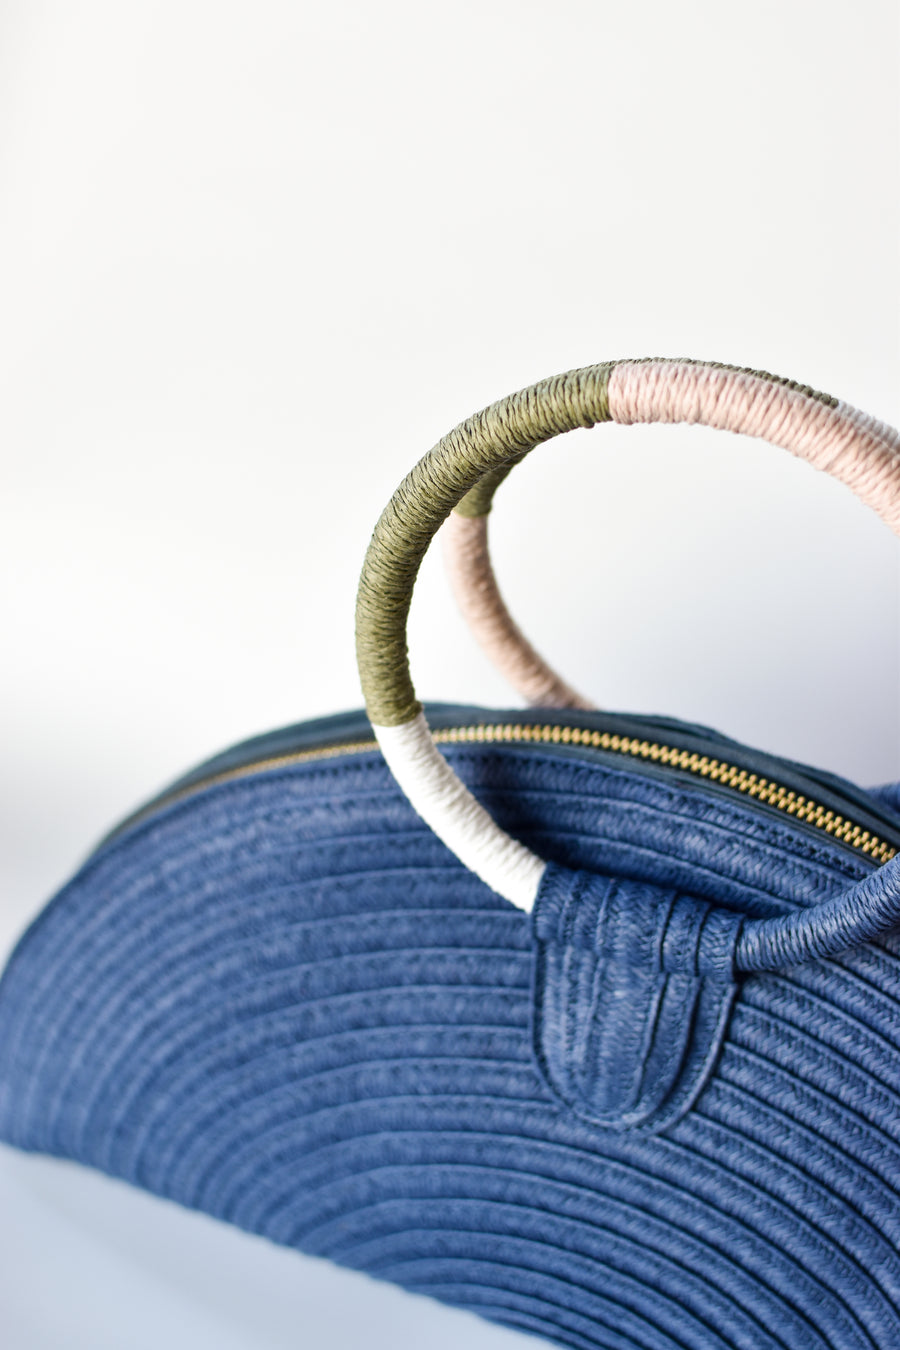 Navy half-moon straw clutch with colorful wrapped circle handle and leather sides..